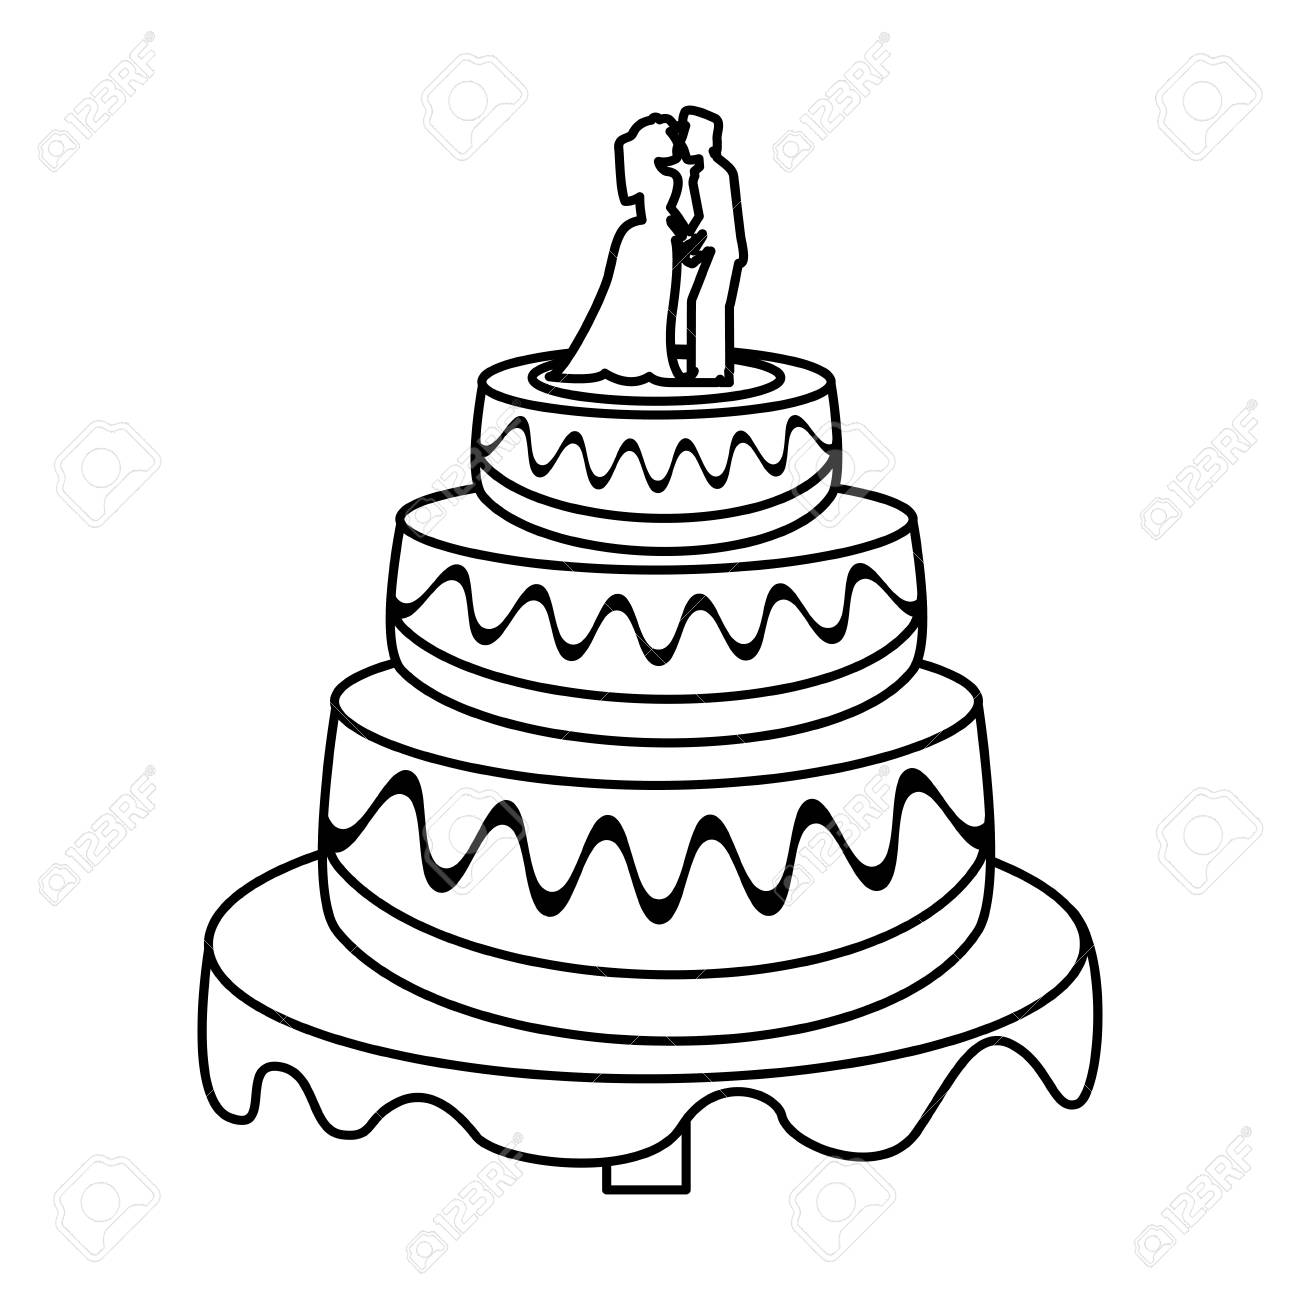 Wedding Cake Couple Sweet Outline Vector Illustration Eps 10 Royalty